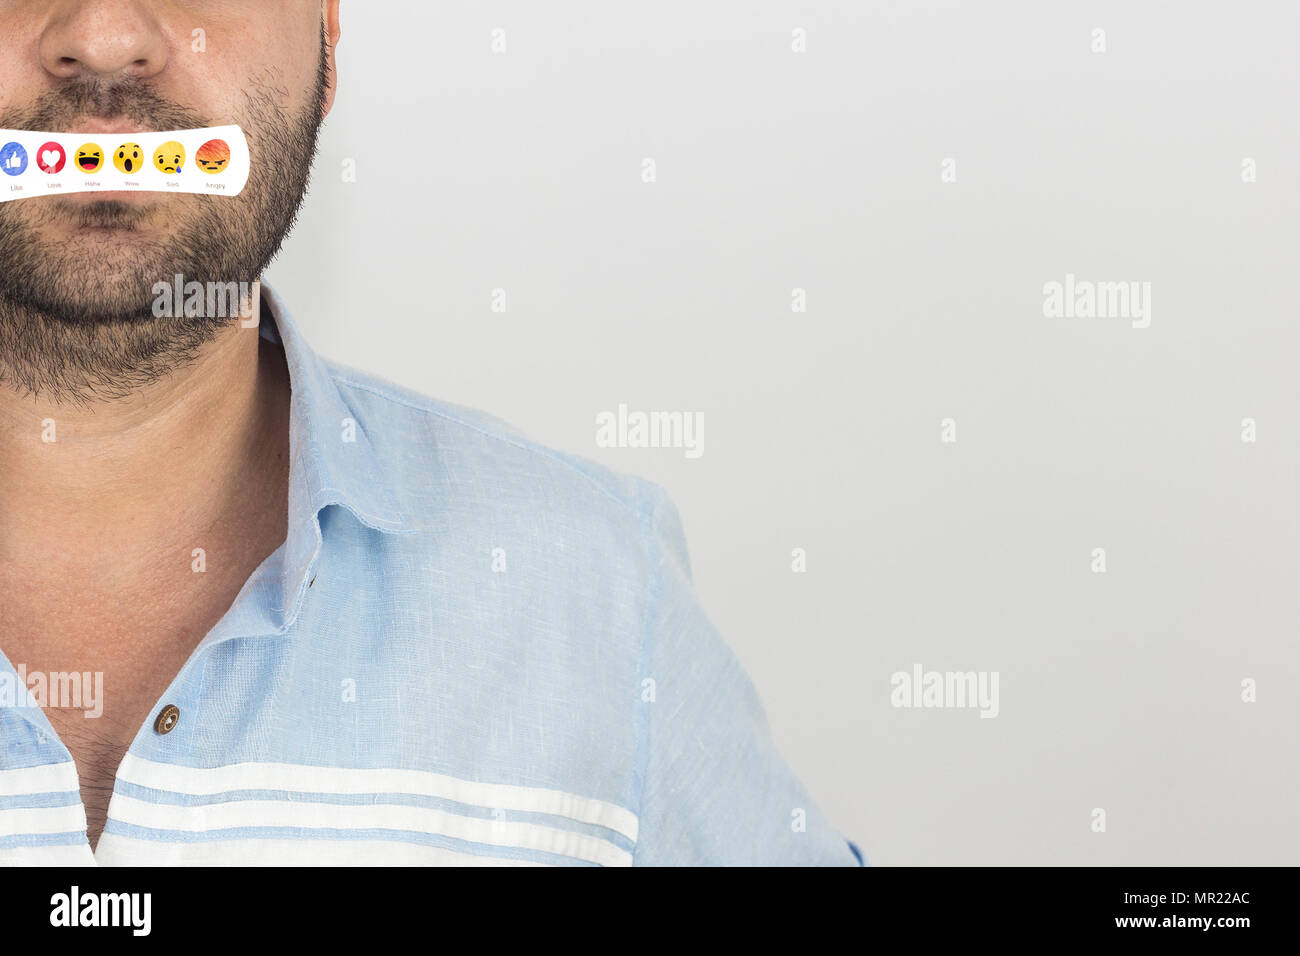 Part of male face with set of emoticons and copy space for text. - Stock Image